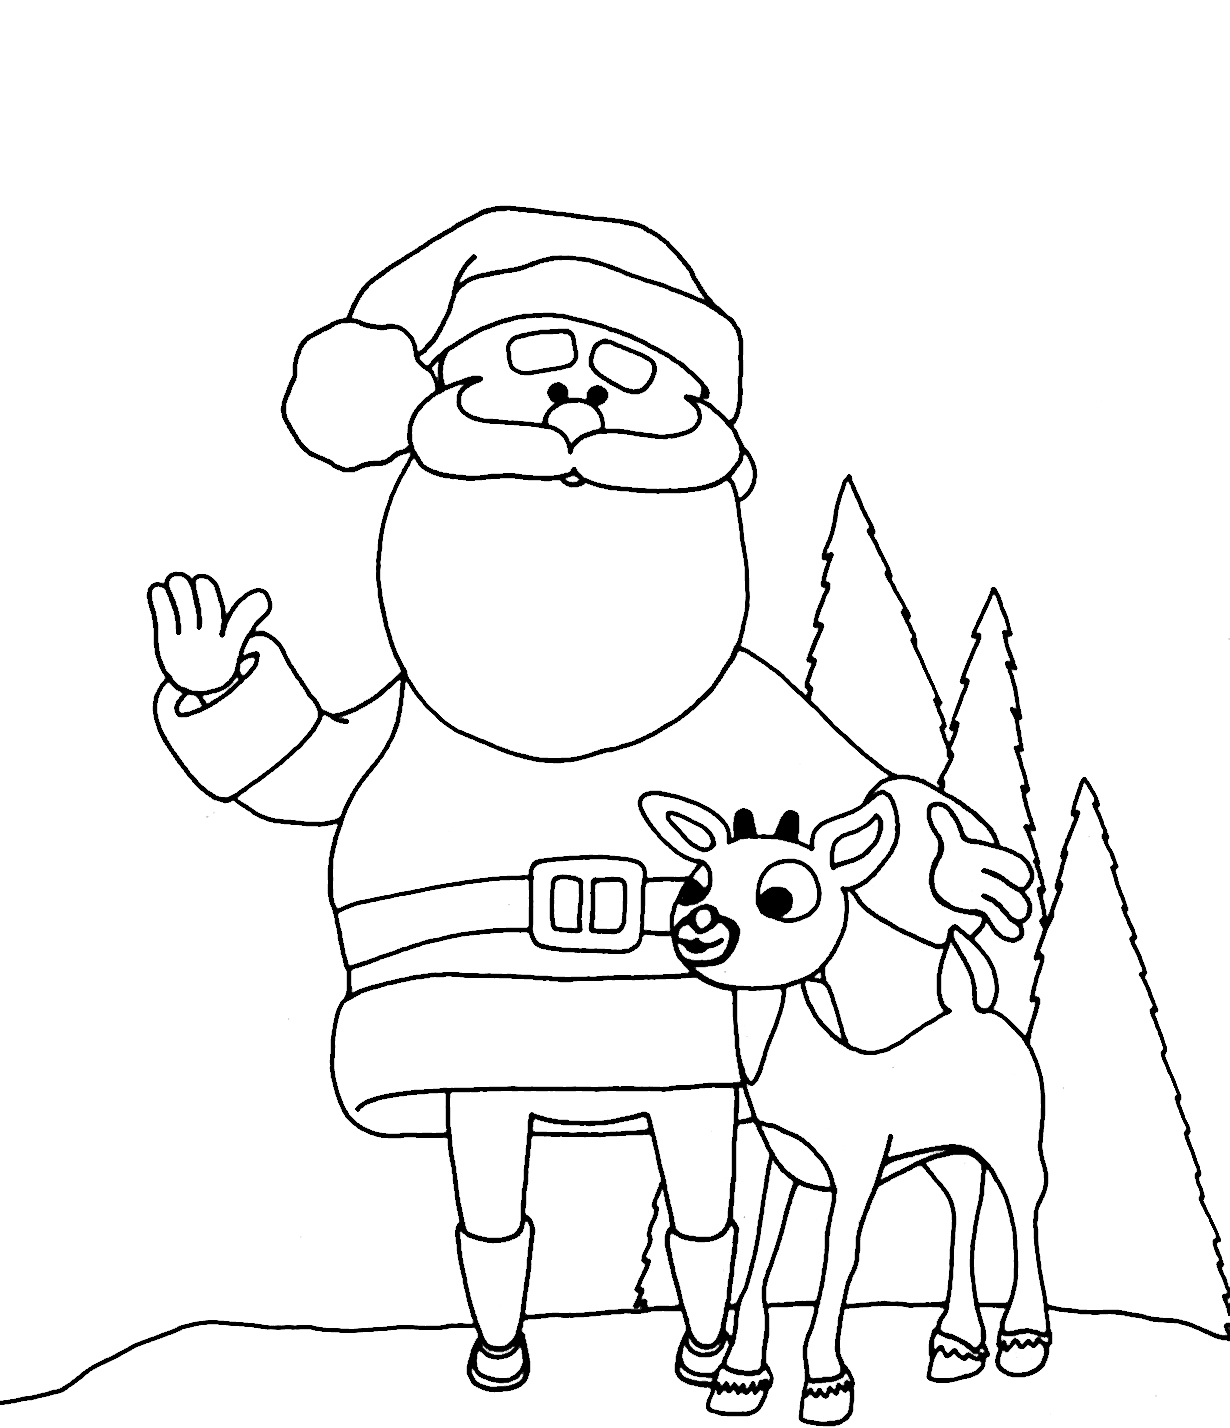 Santa Claus And Rudolph Coloring Pages With Yucca Flats N M Wenchkin S Rankin Bass Tribute